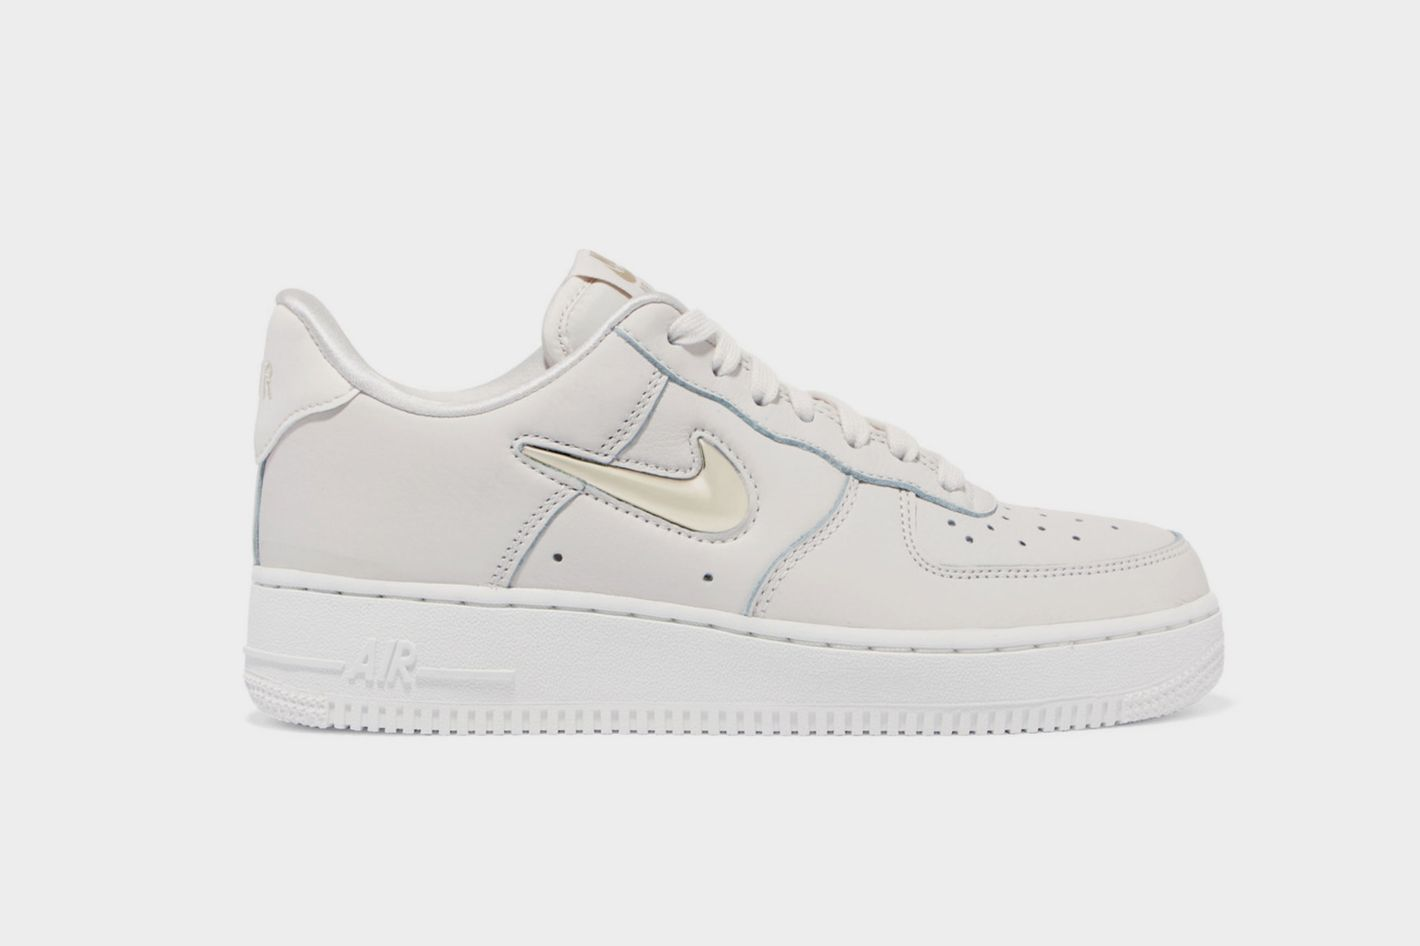 Nike Air Force I '07 LX Leather Sneakers